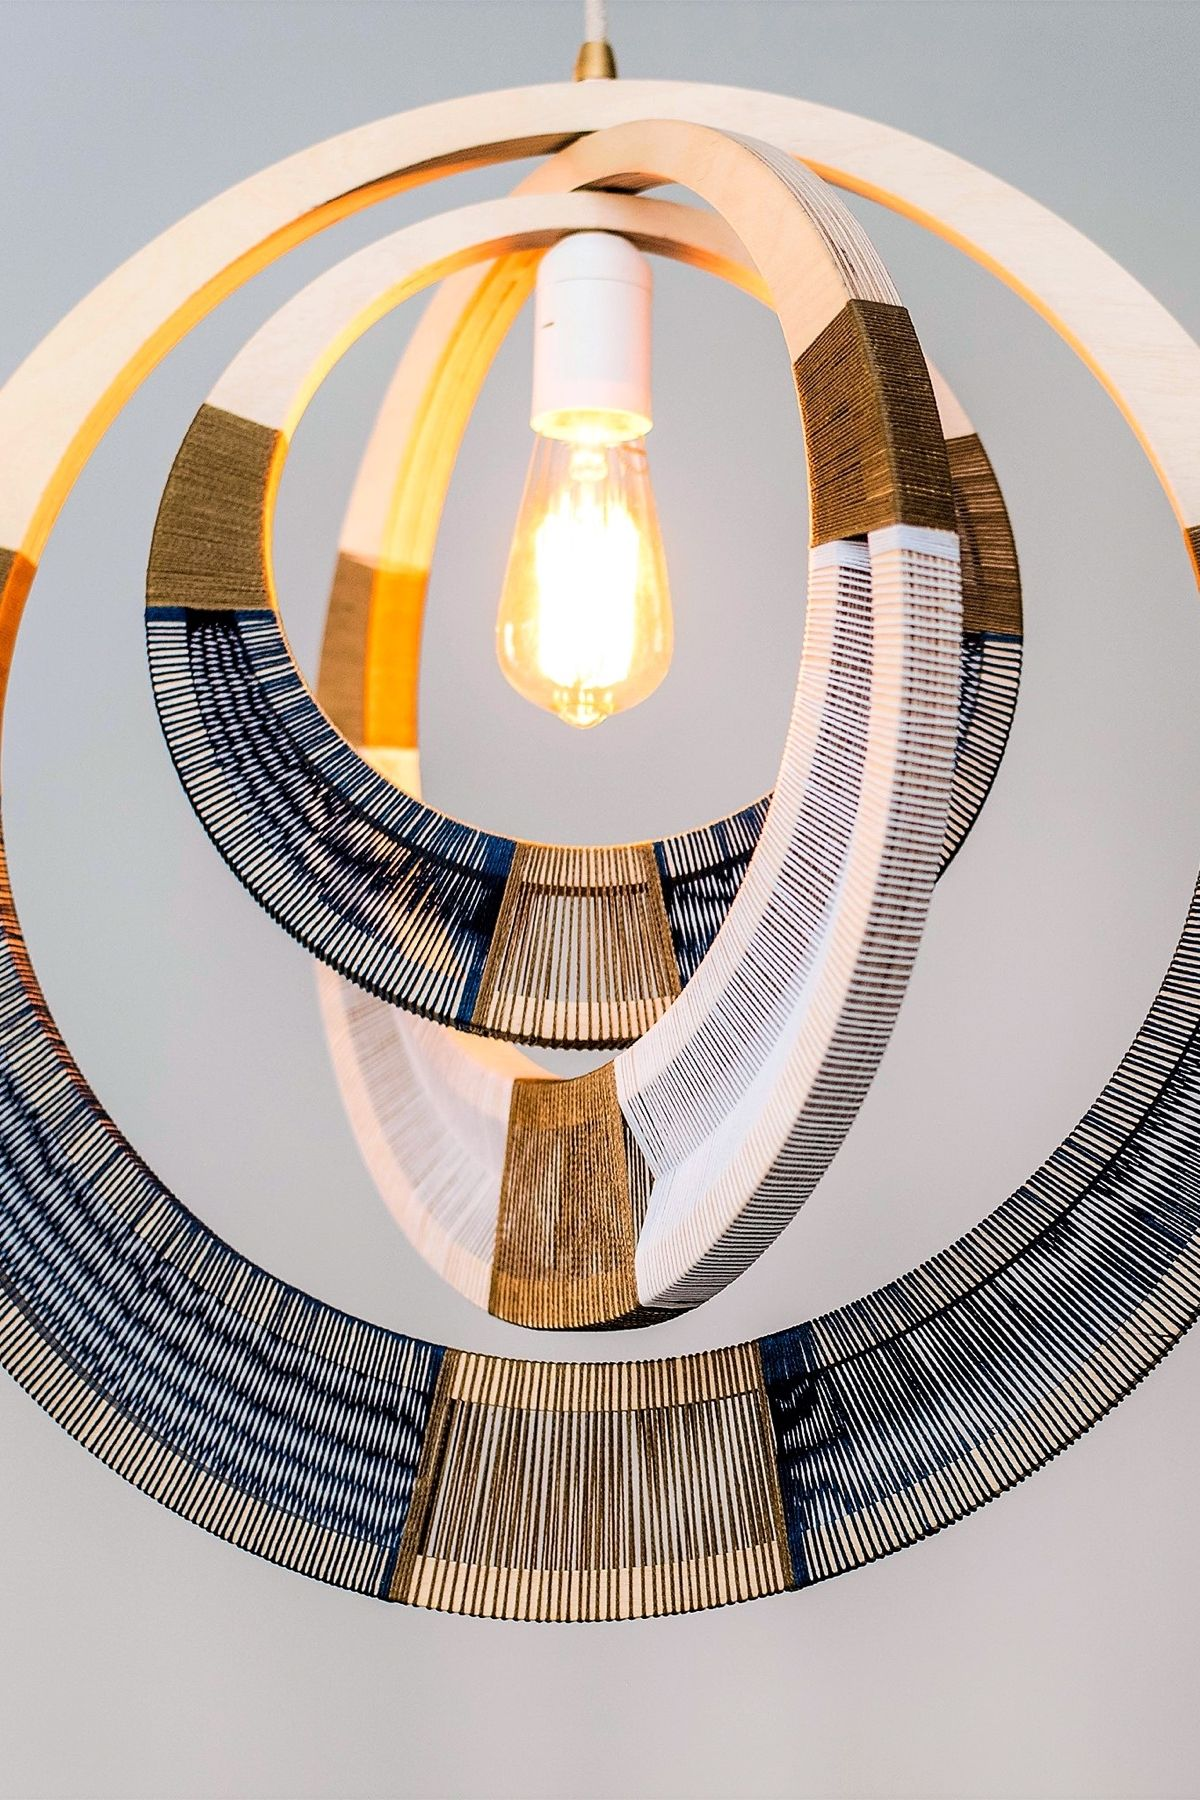 100 Contemporary African Lighting 54kibo Ideas In 2020 T